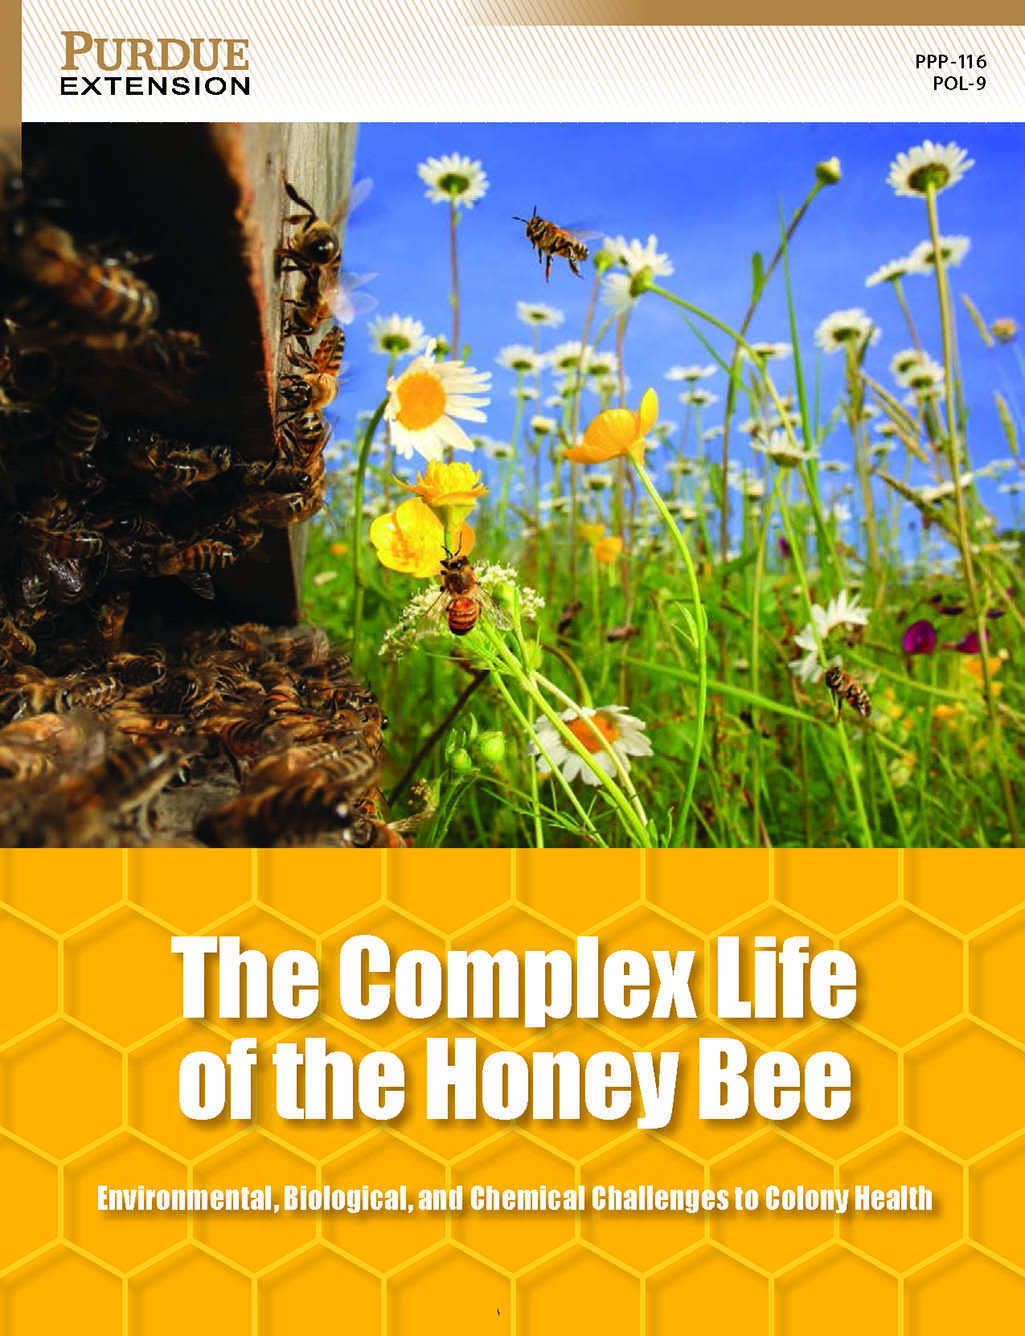 The complex life of the honey bee purdue pesticide programs 1betcityfo Gallery